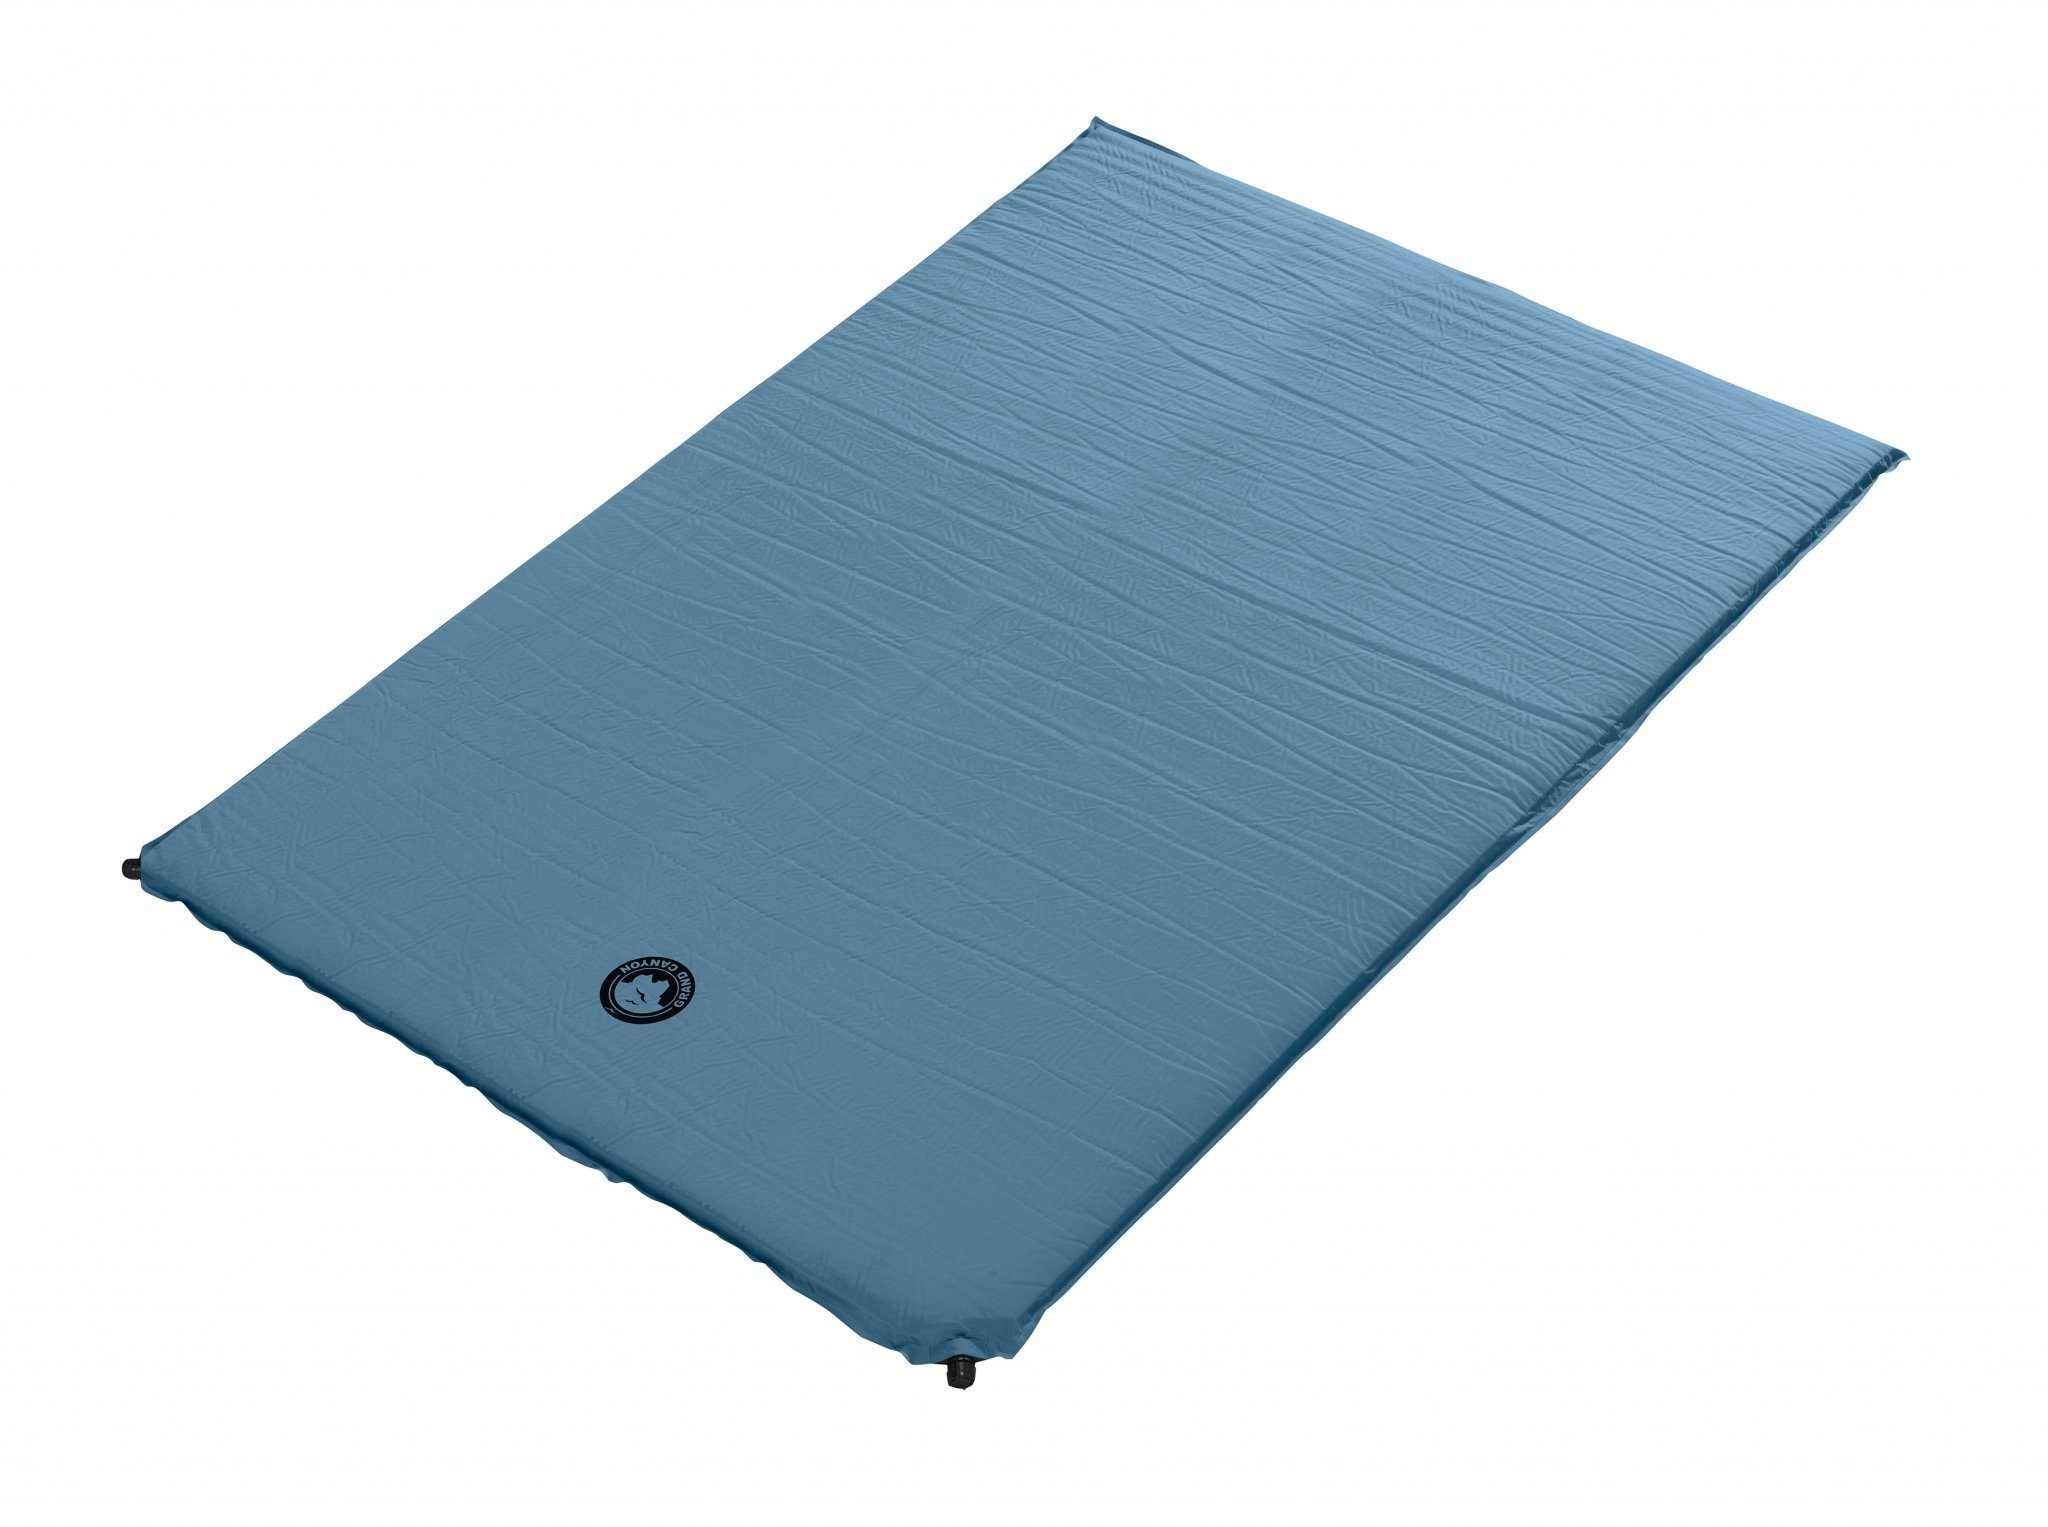 Grand Canyon Luftmatratze »Cruise 5.0 Double Self-Inflatable Mat«